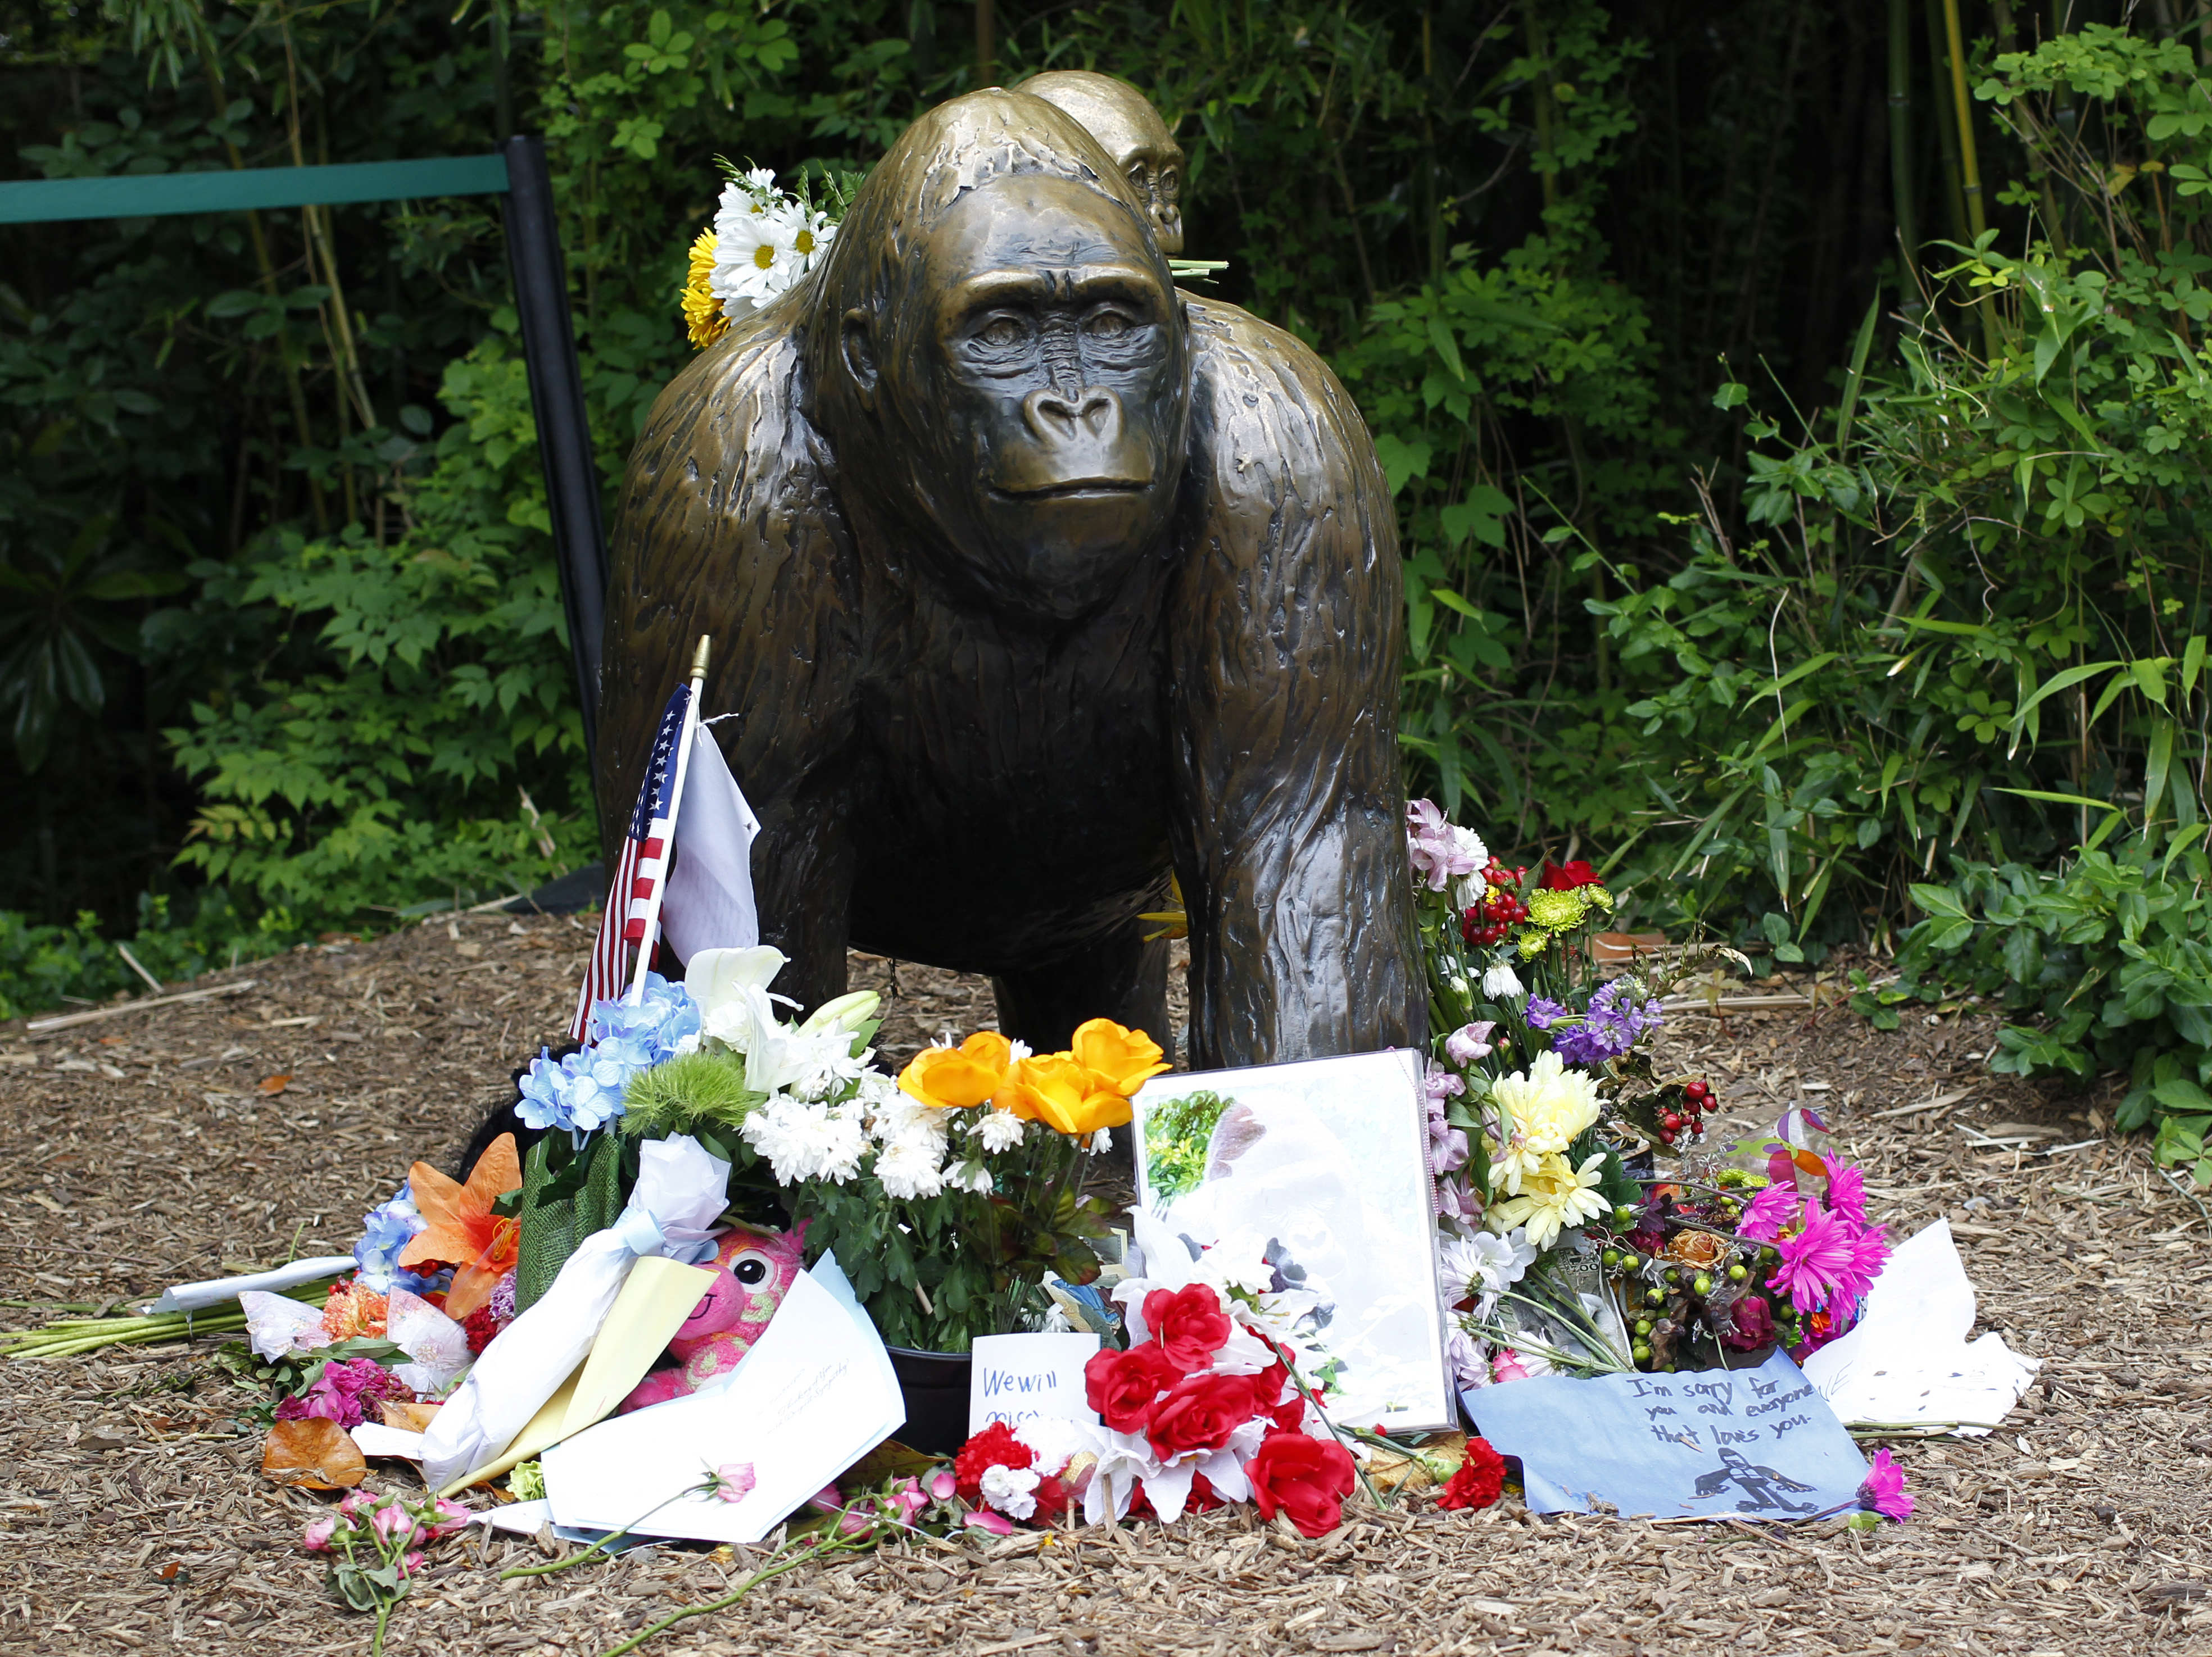 GettyImages 537652410 Pharma Douche Martin Shkreli Plans To Resurrect Harambe, Internet Goes Mad